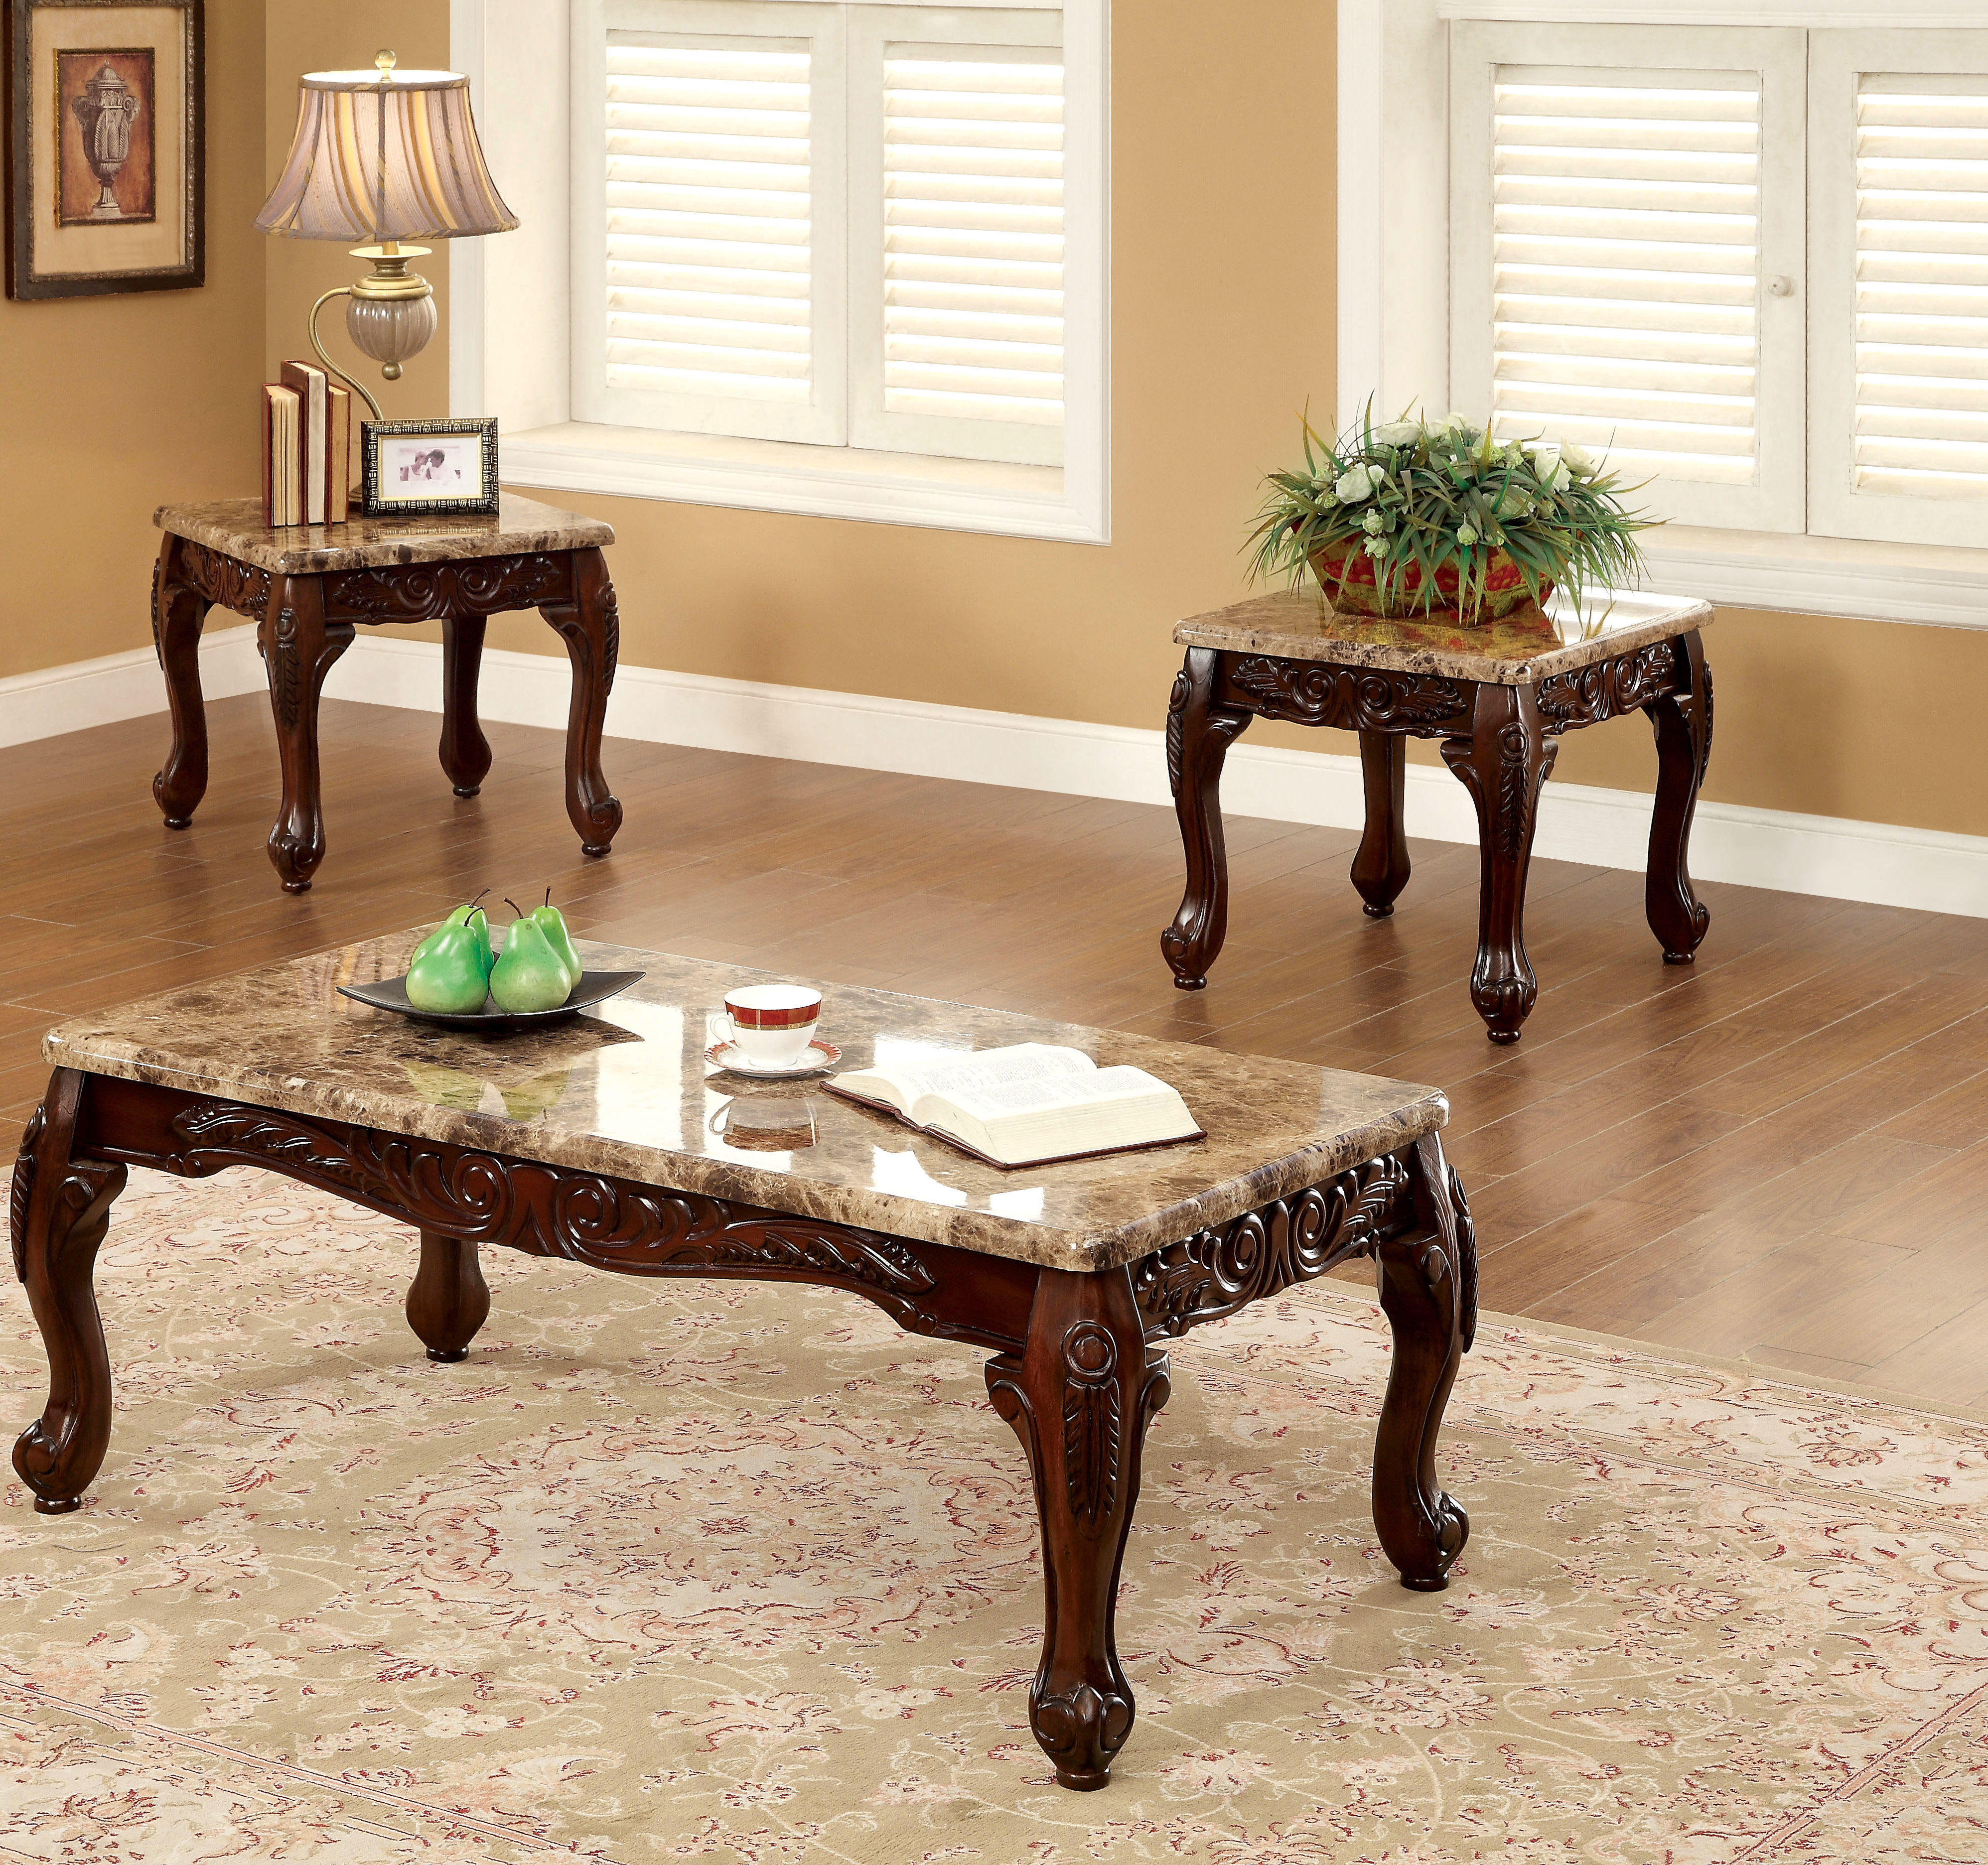 astoria grand albertus piece coffee table set reviews accent chair and side all marble inch round covers couch west elm payment bunnings timber outdoor furniture jcpenney area